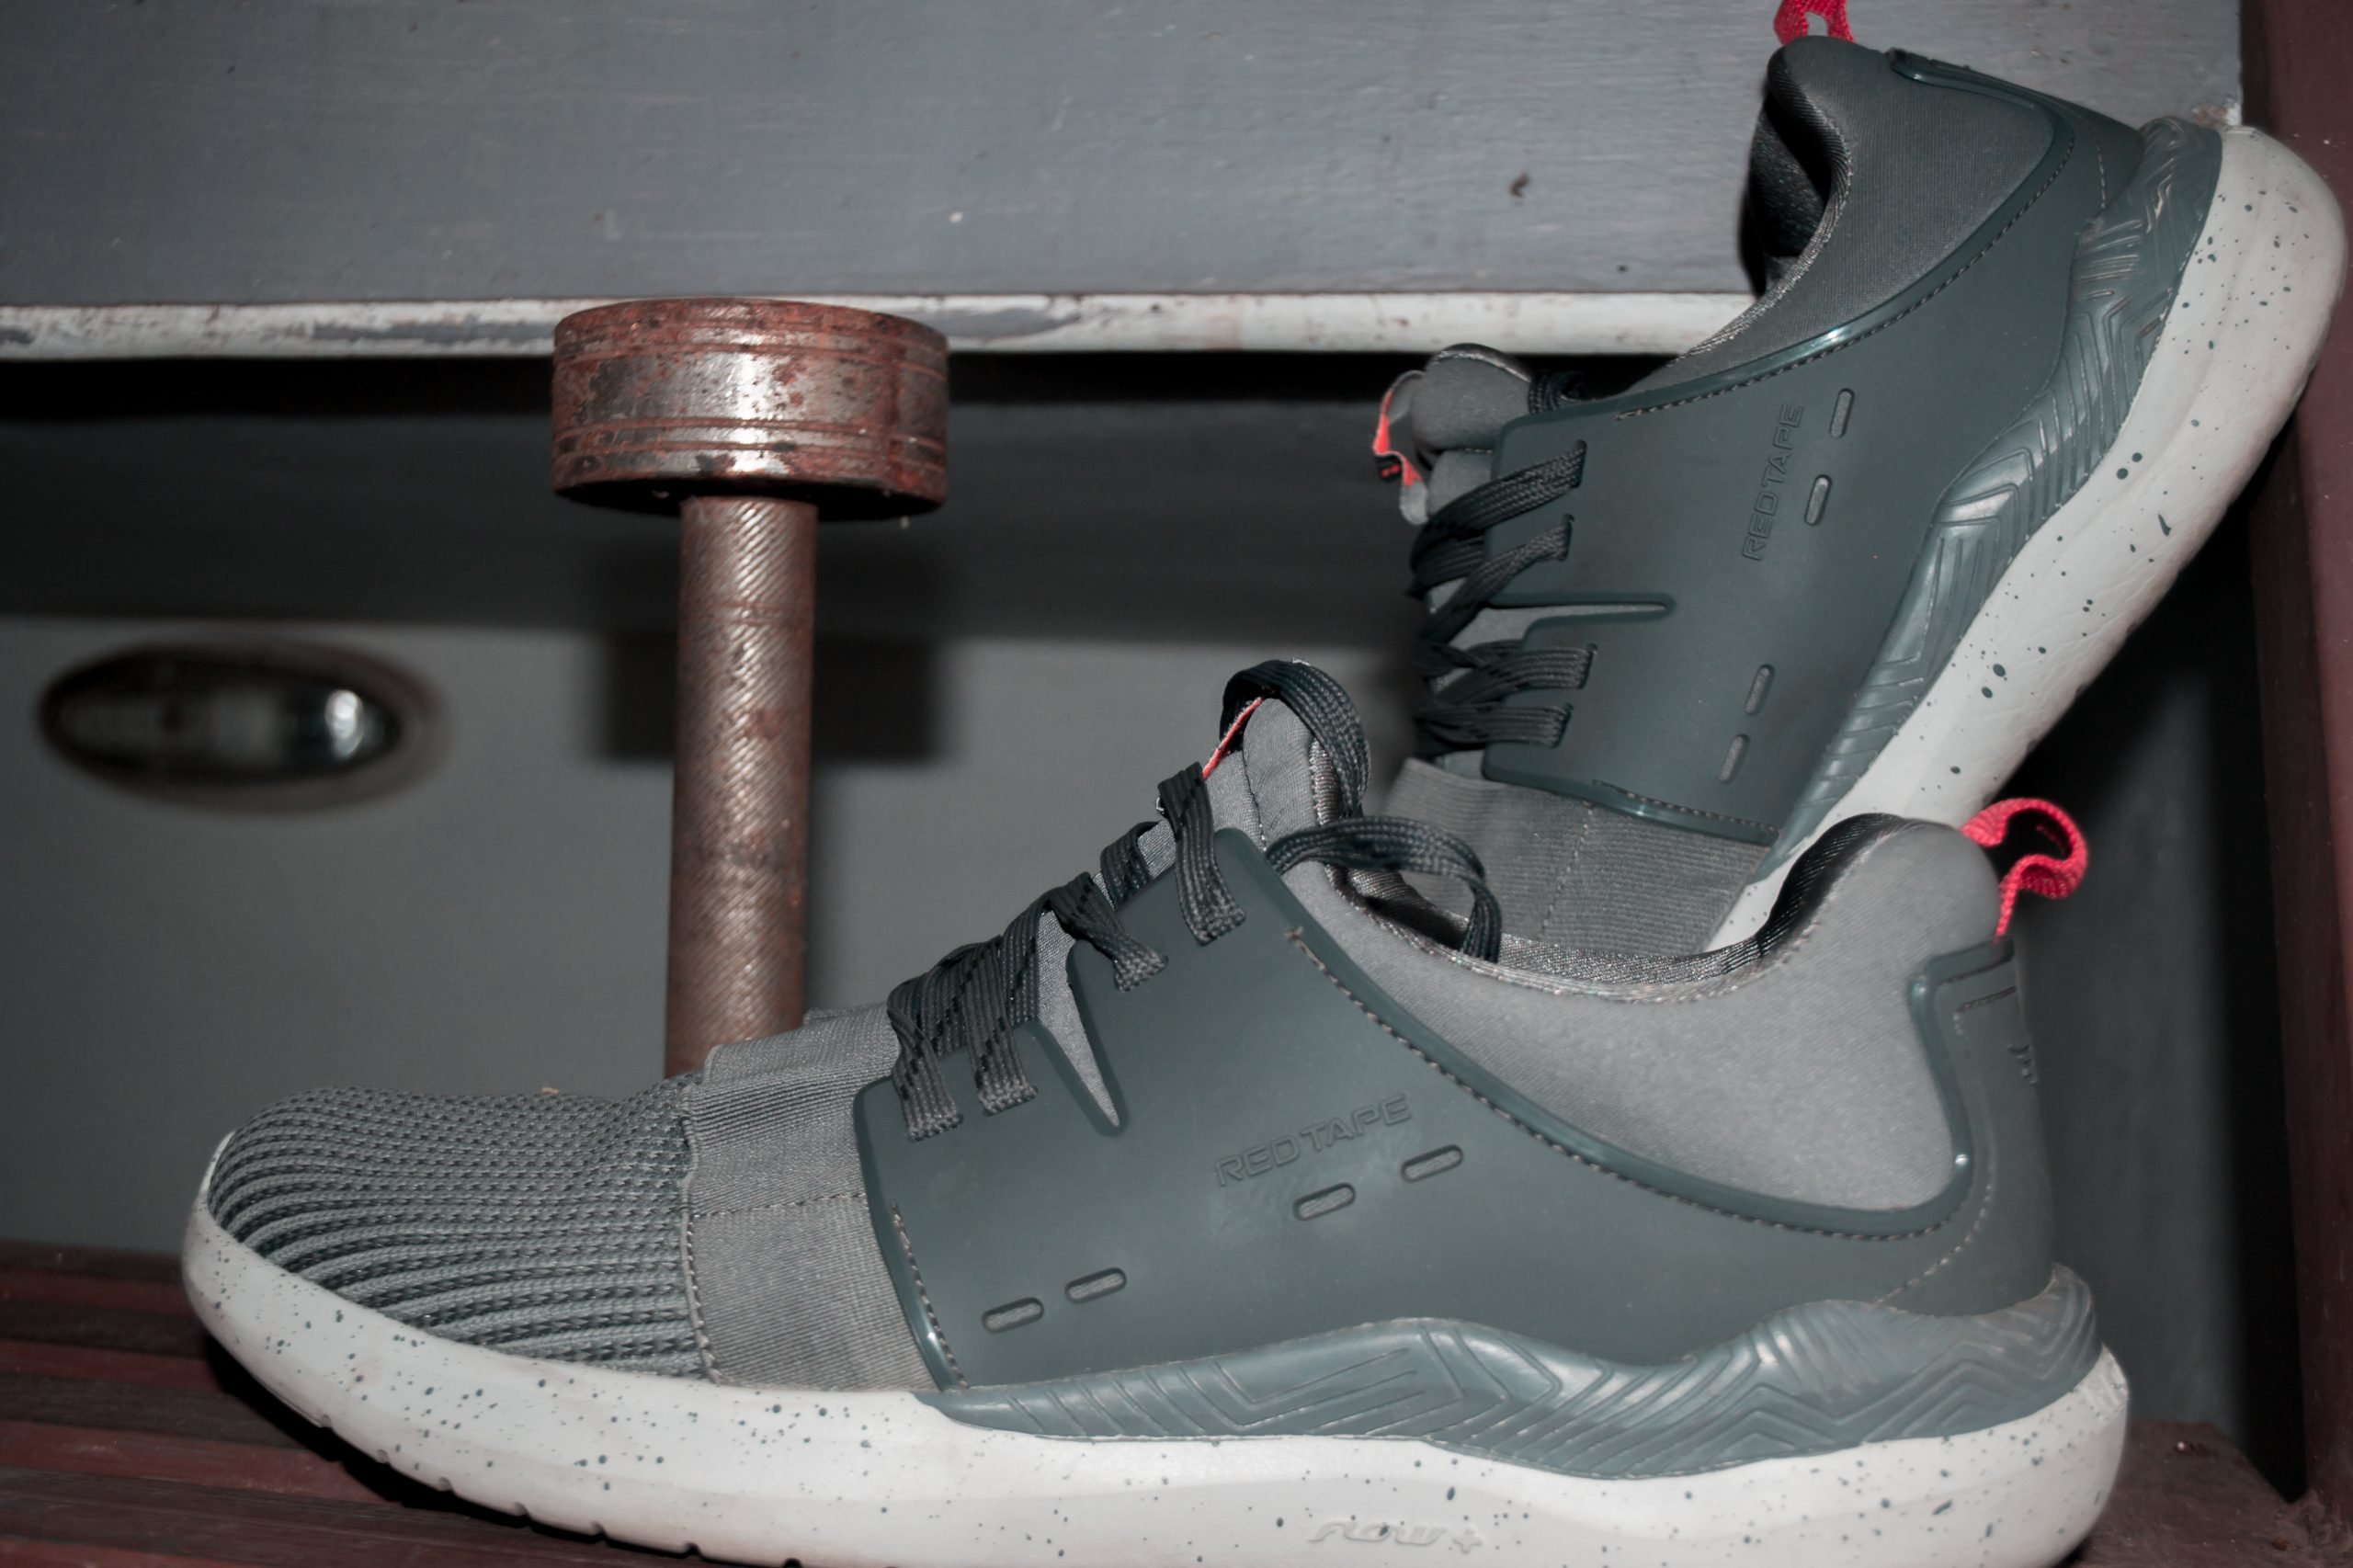 Dumbbell and gym shoes